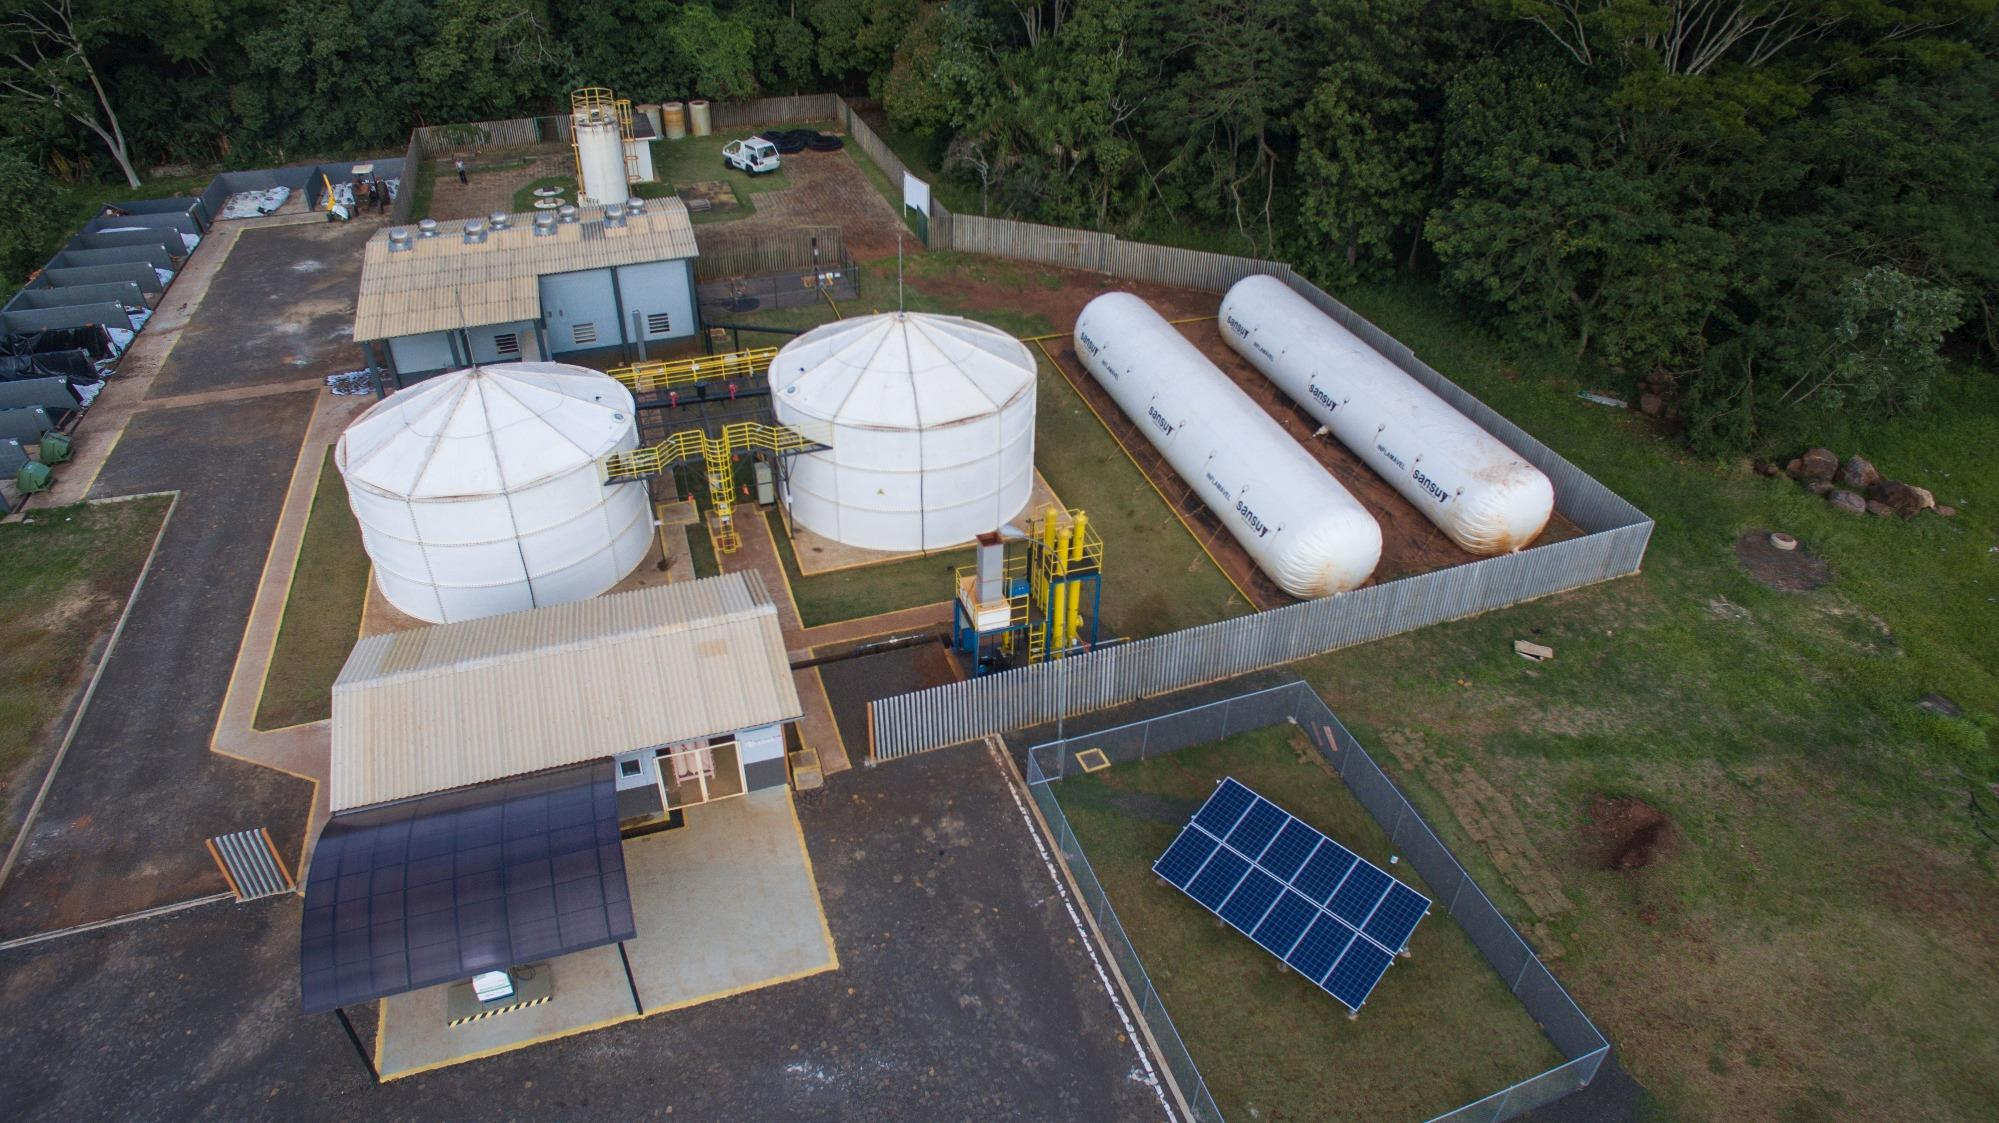 Discover how to add value to your property from biogas